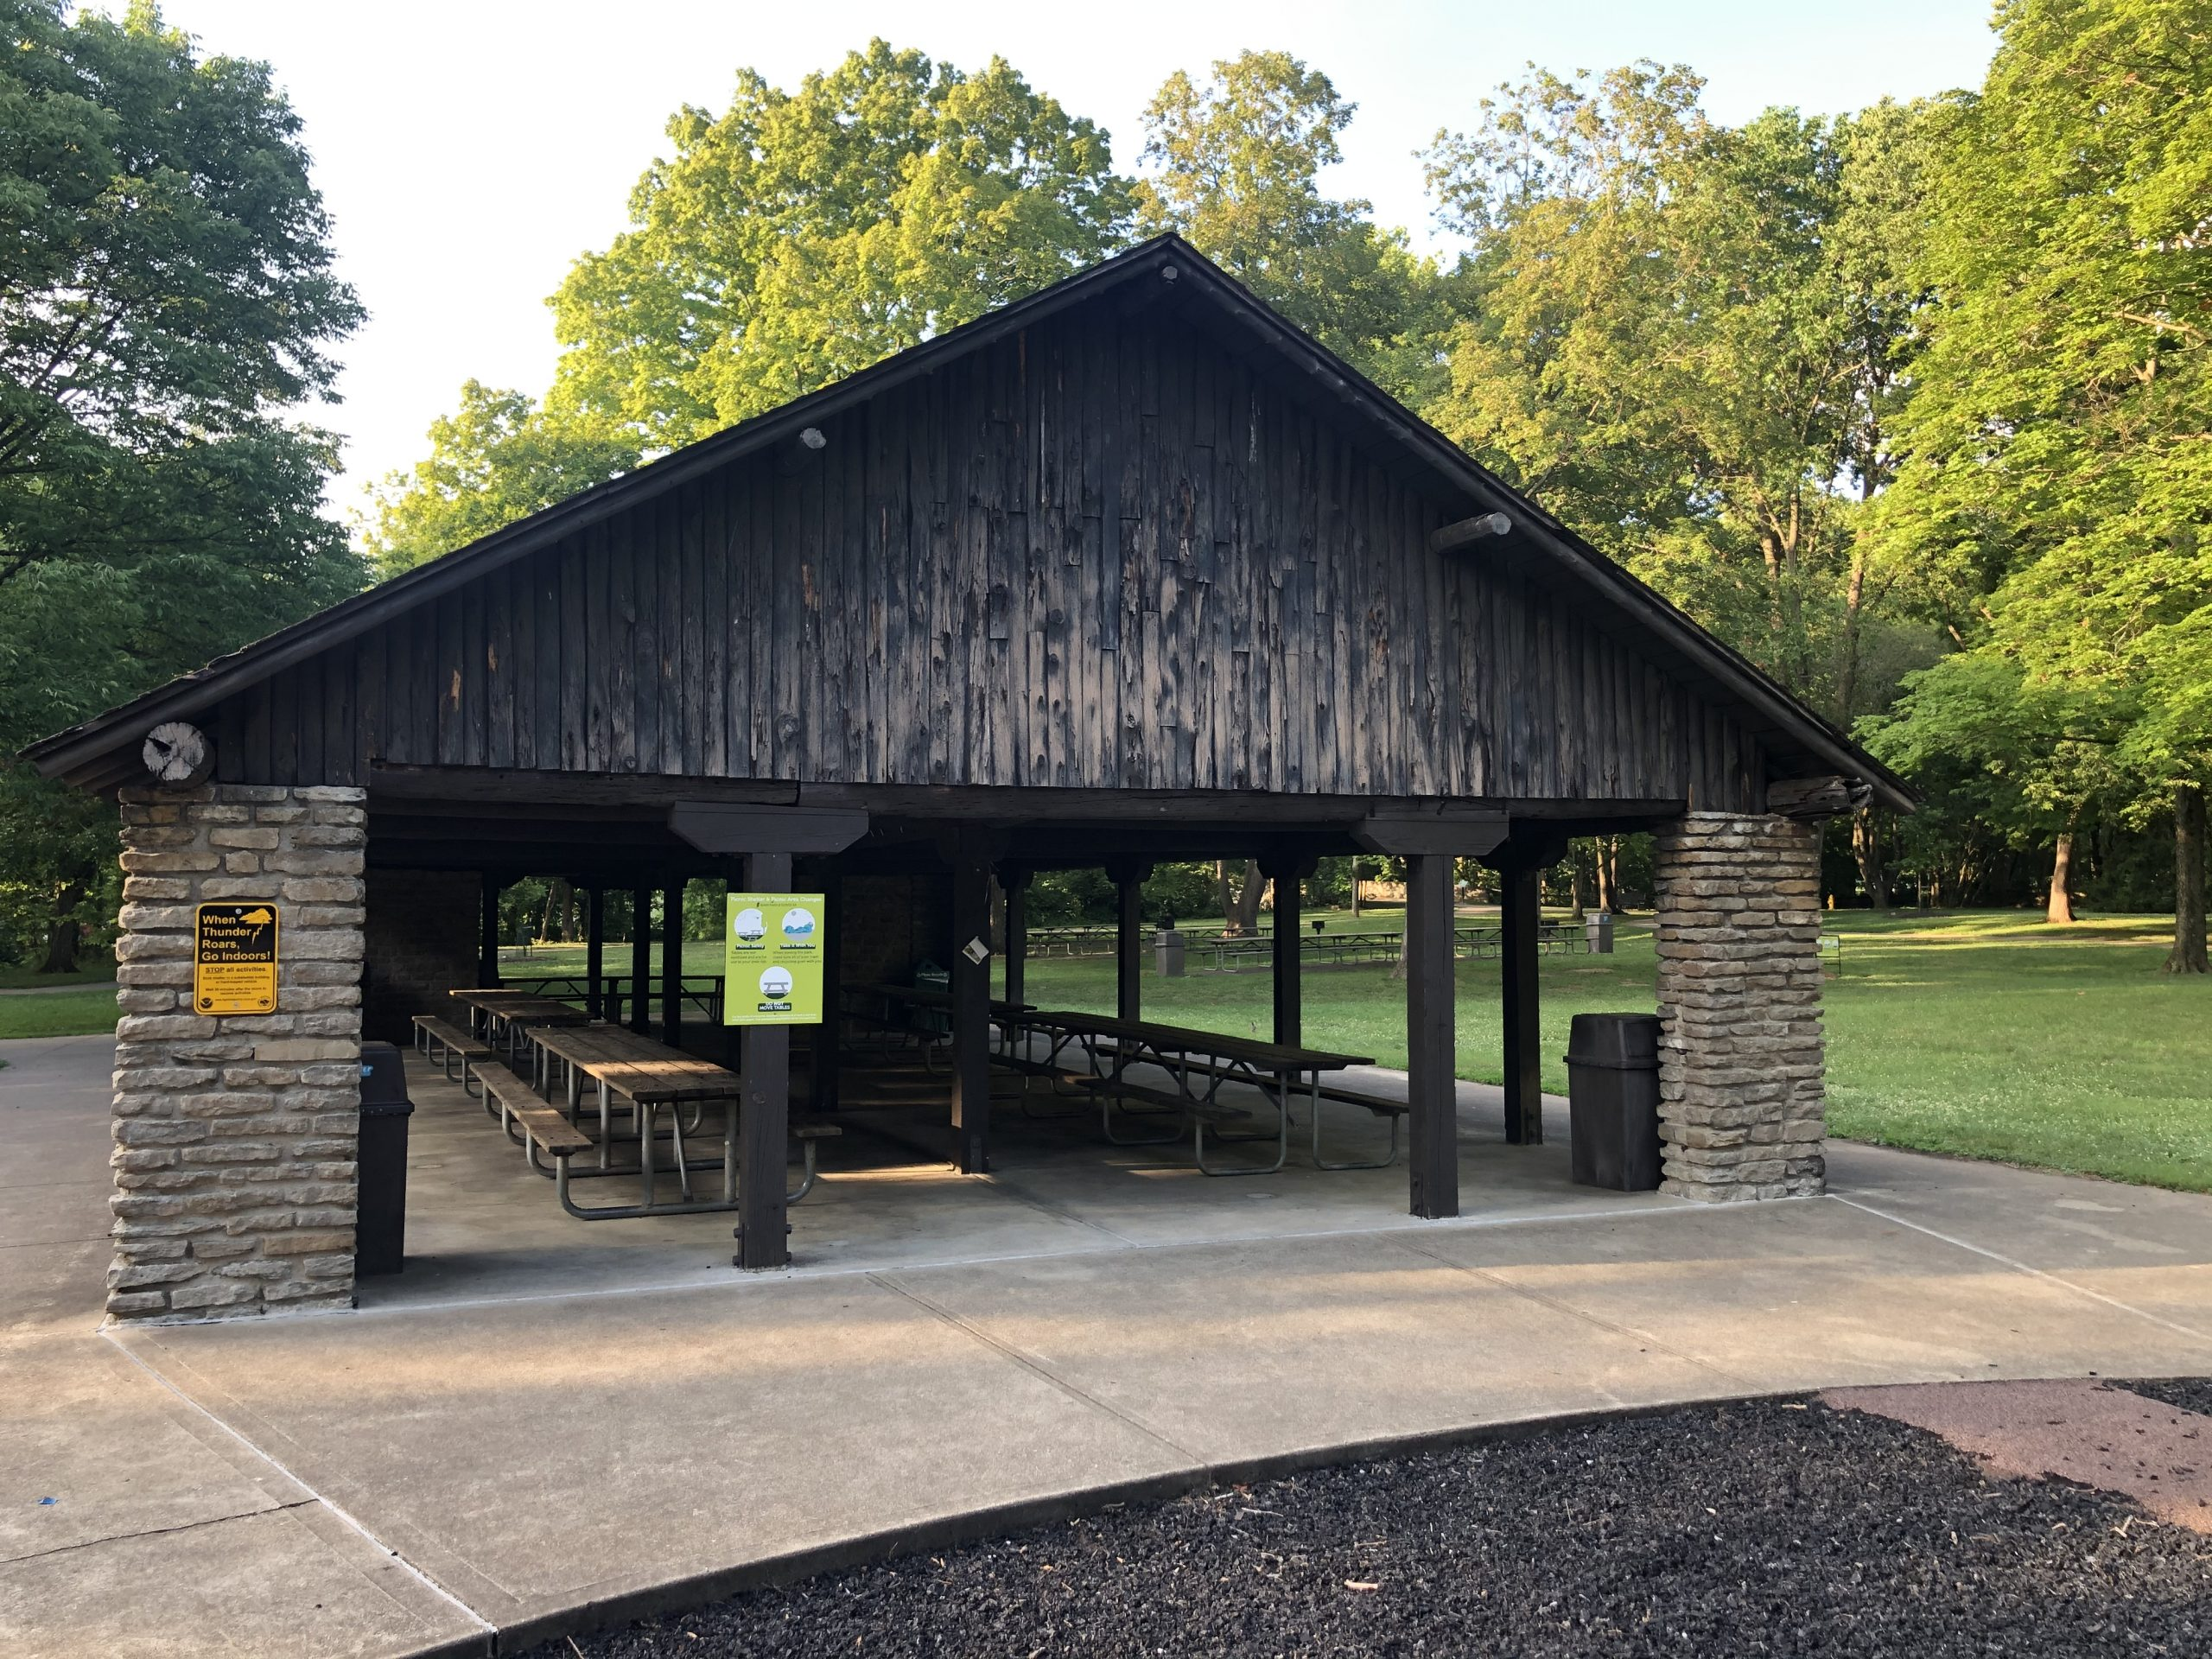 Pavilion Grove Shelter, July 2020